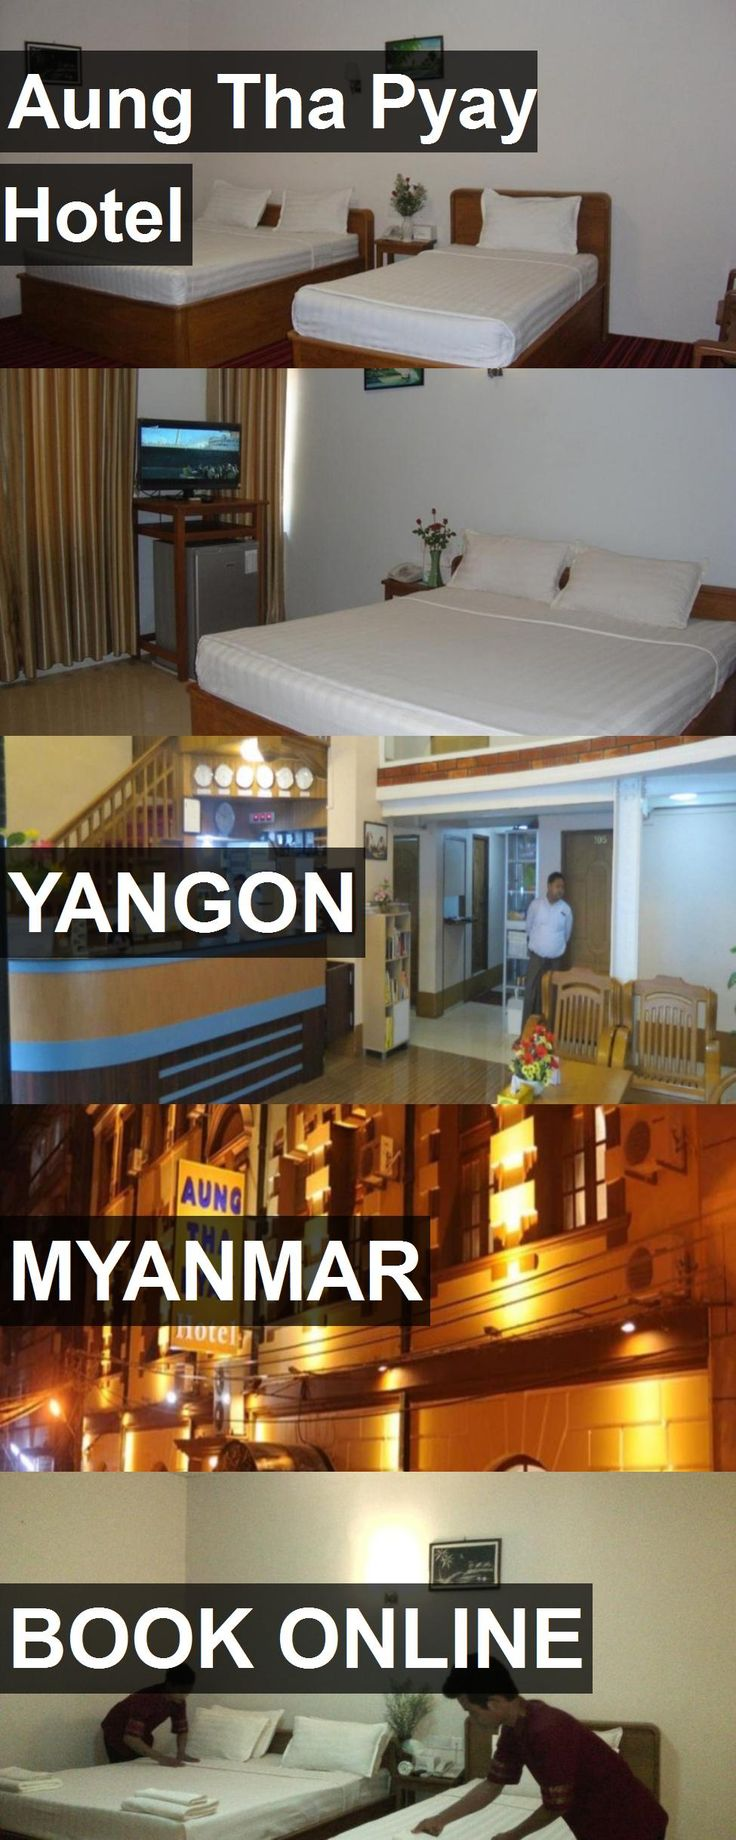 Hotel Aung Tha Pyay Hotel in Yangon, Myanmar. For more information, photos, reviews and best prices please follow the link. #Myanmar #Yangon #AungThaPyayHotel #hotel #travel #vacation